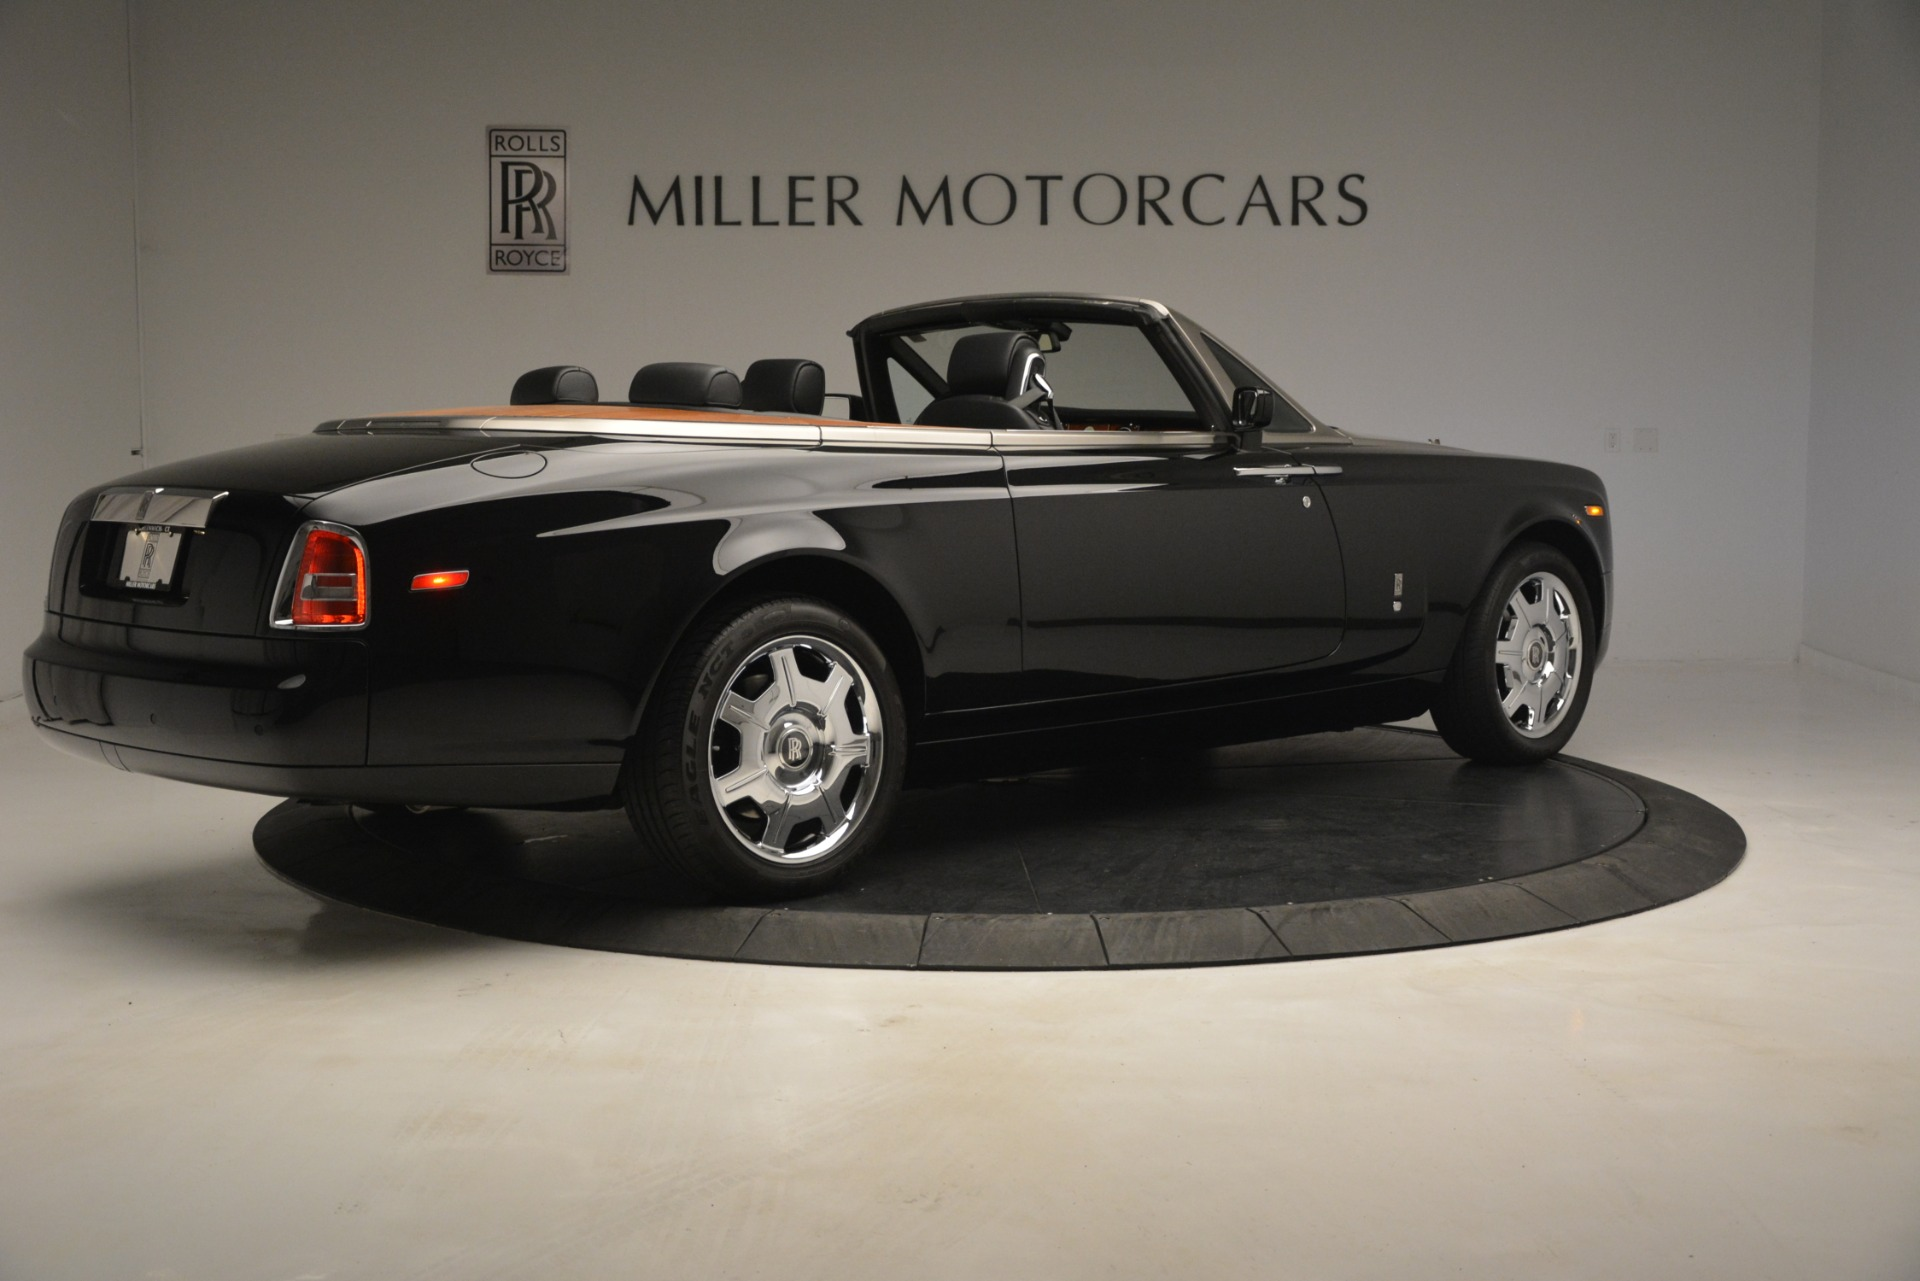 Used 2008 Rolls-Royce Phantom Drophead Coupe  For Sale In Westport, CT 3000_p12